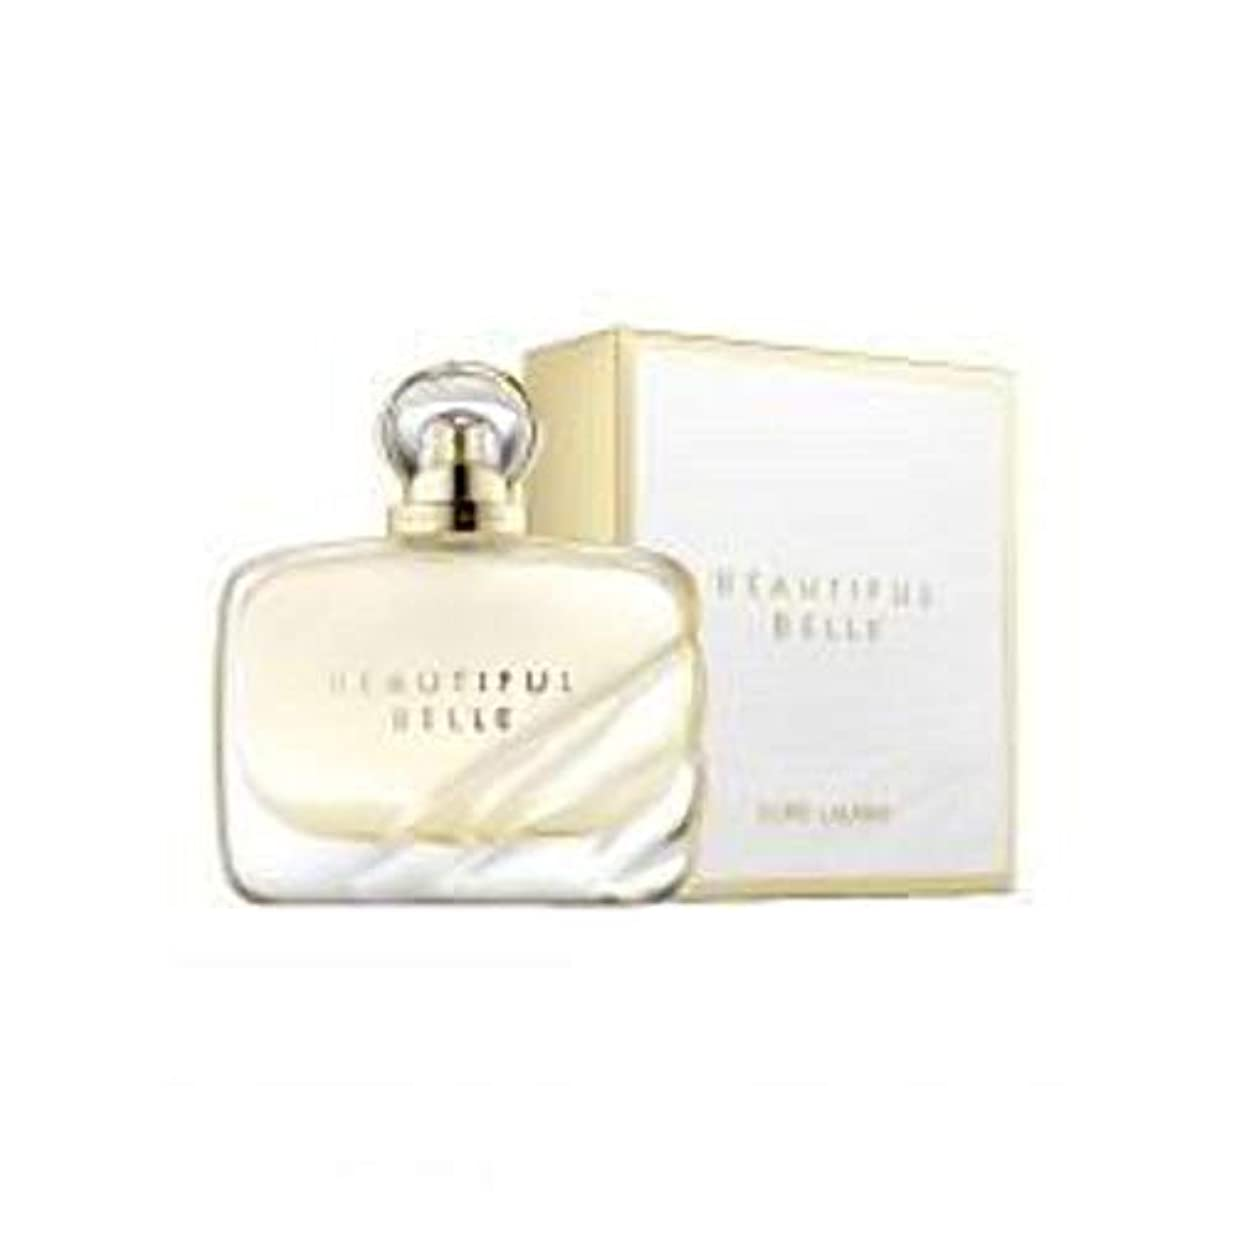 ルーフサンダルハリウッドEstee Lauder Beautiful Belle 100 ML Eau de Parfum